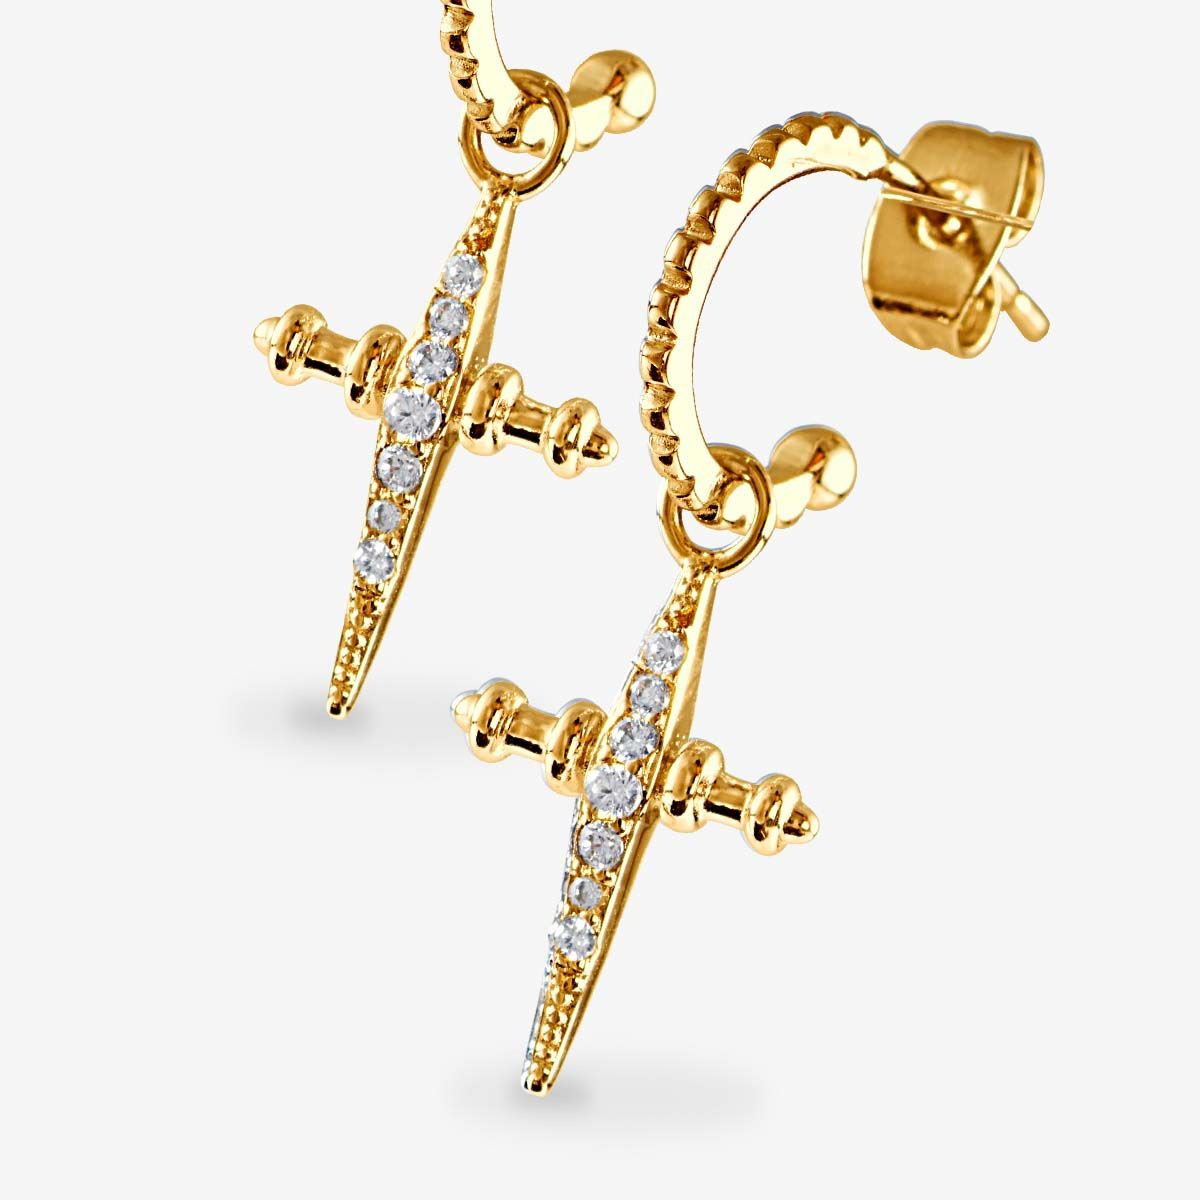 The Pave Mini Cross Hoops - Ohrstecker - Gold